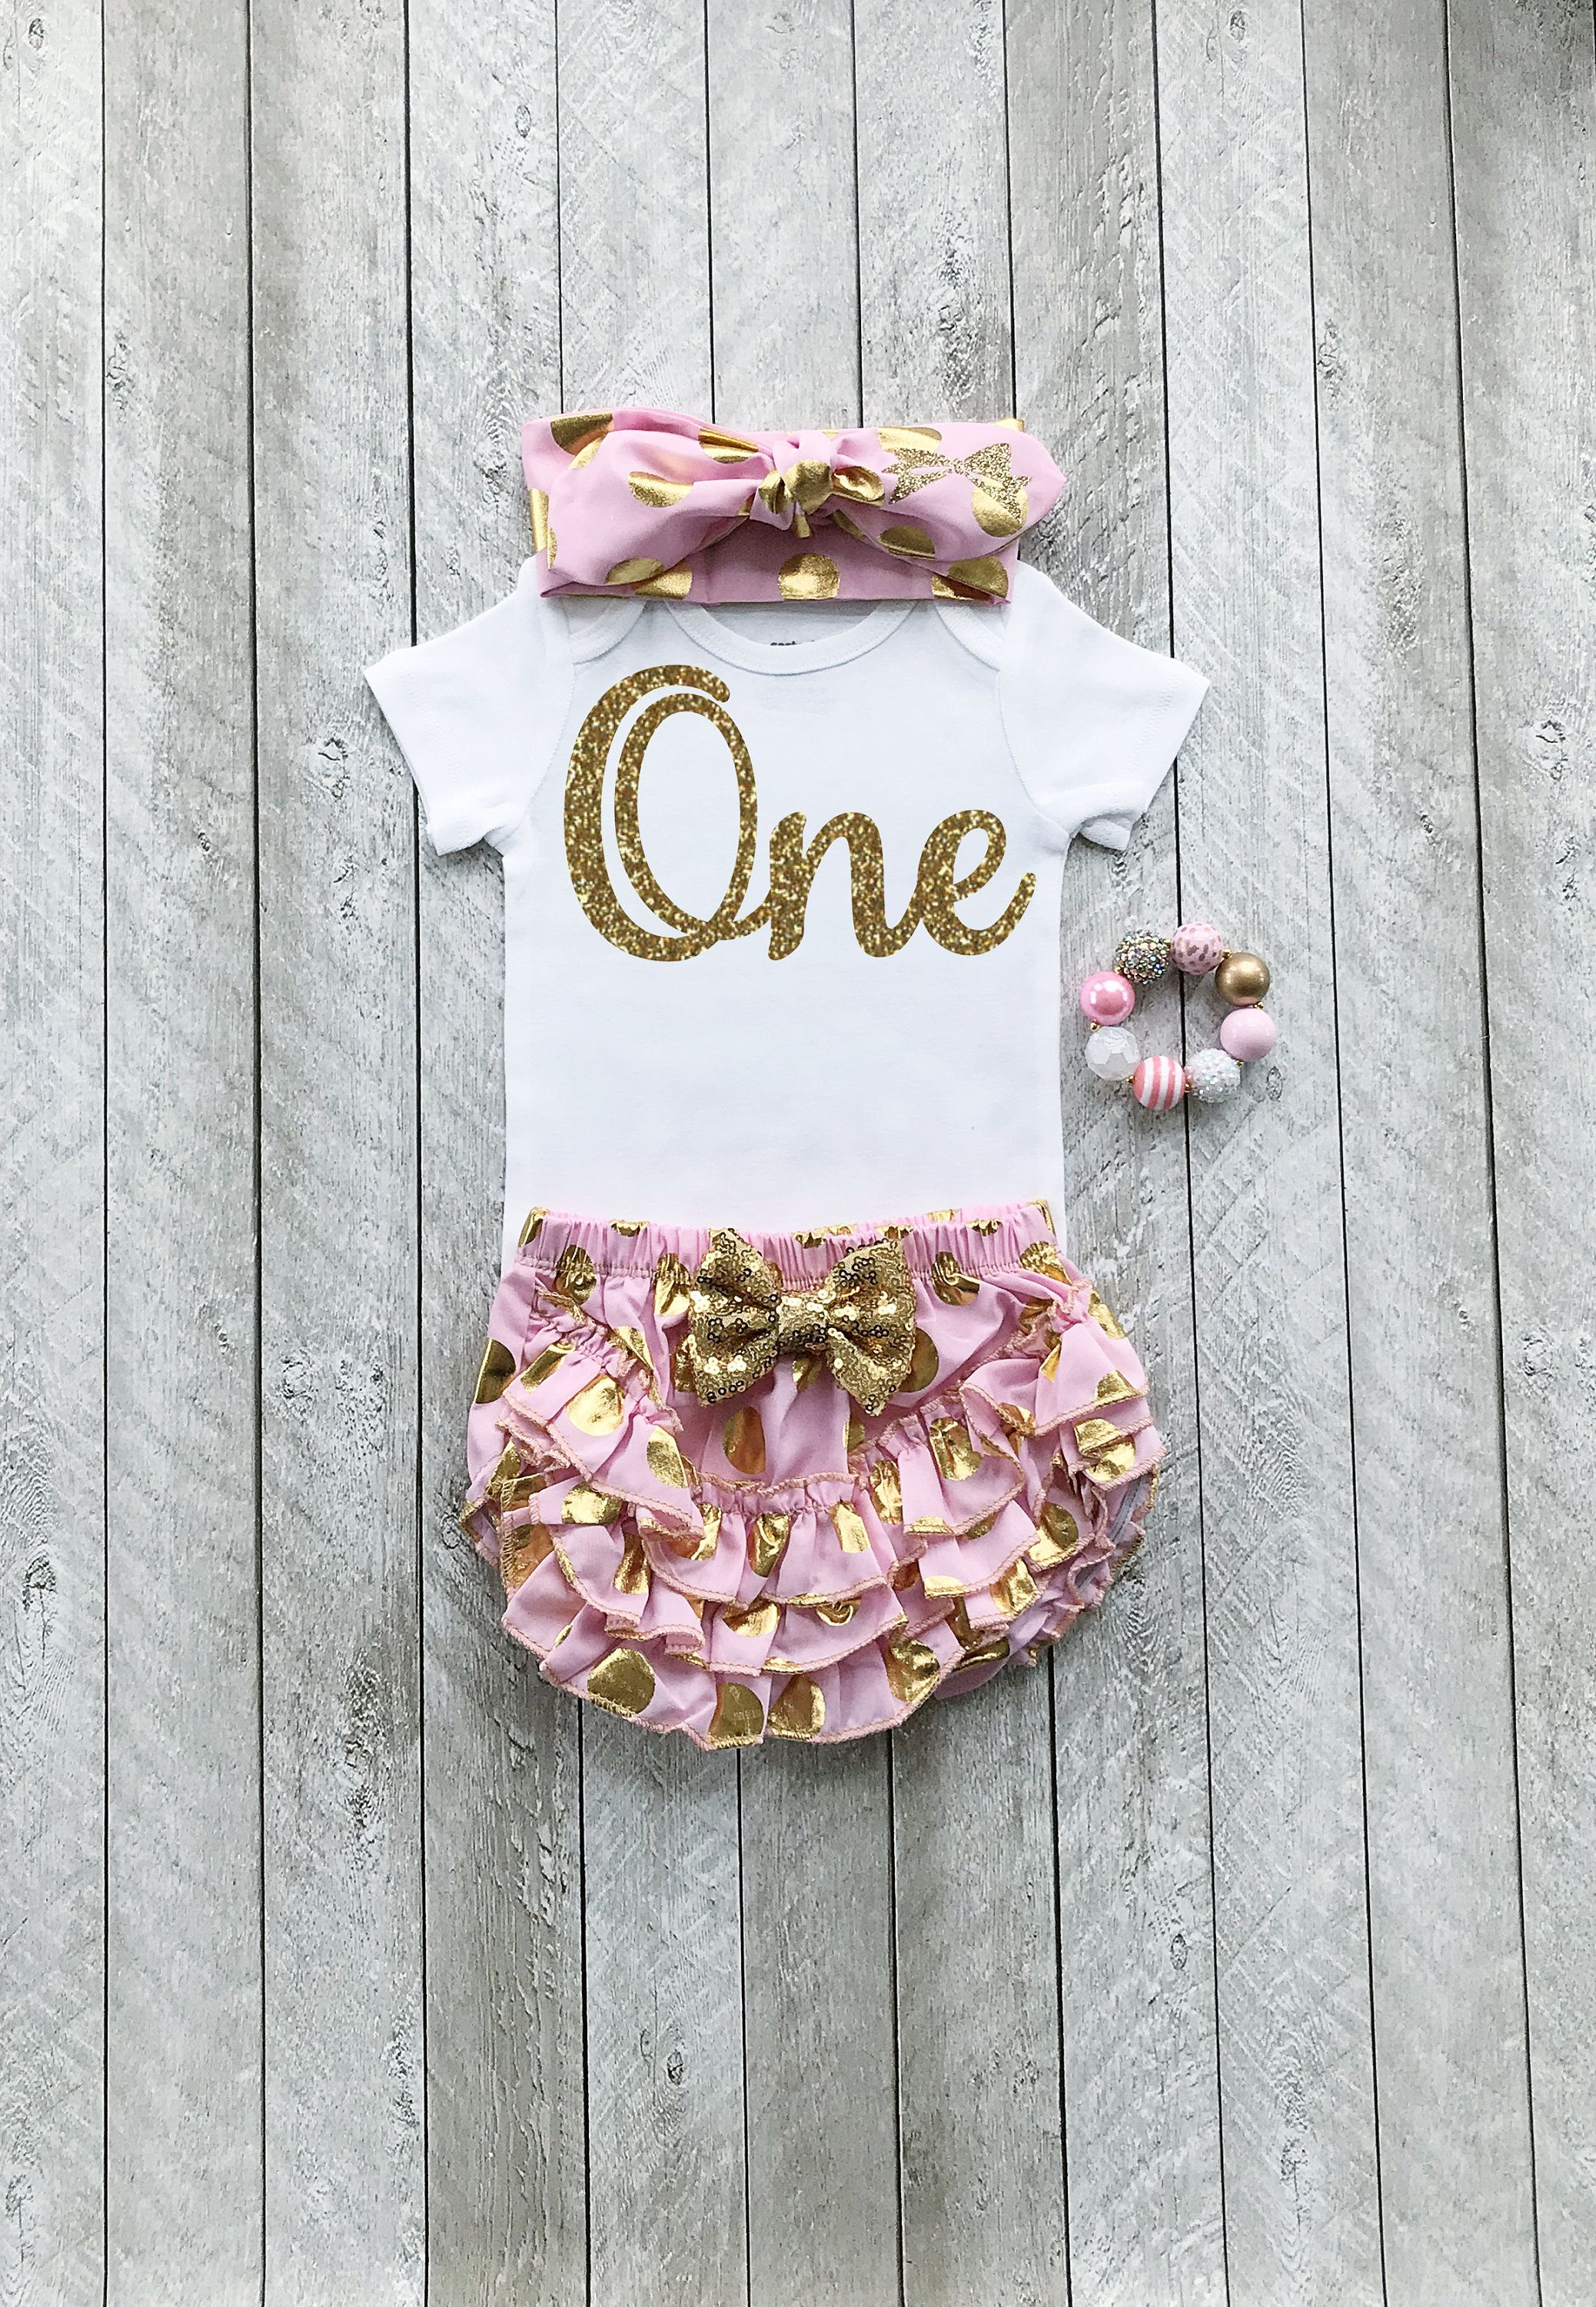 dcaf150260754 One year old outfit girl by SweetPeaCharlies on Etsy. One year old outfit  girl by SweetPeaCharlies on Etsy Gold First Birthday Outfit, Baby Girl